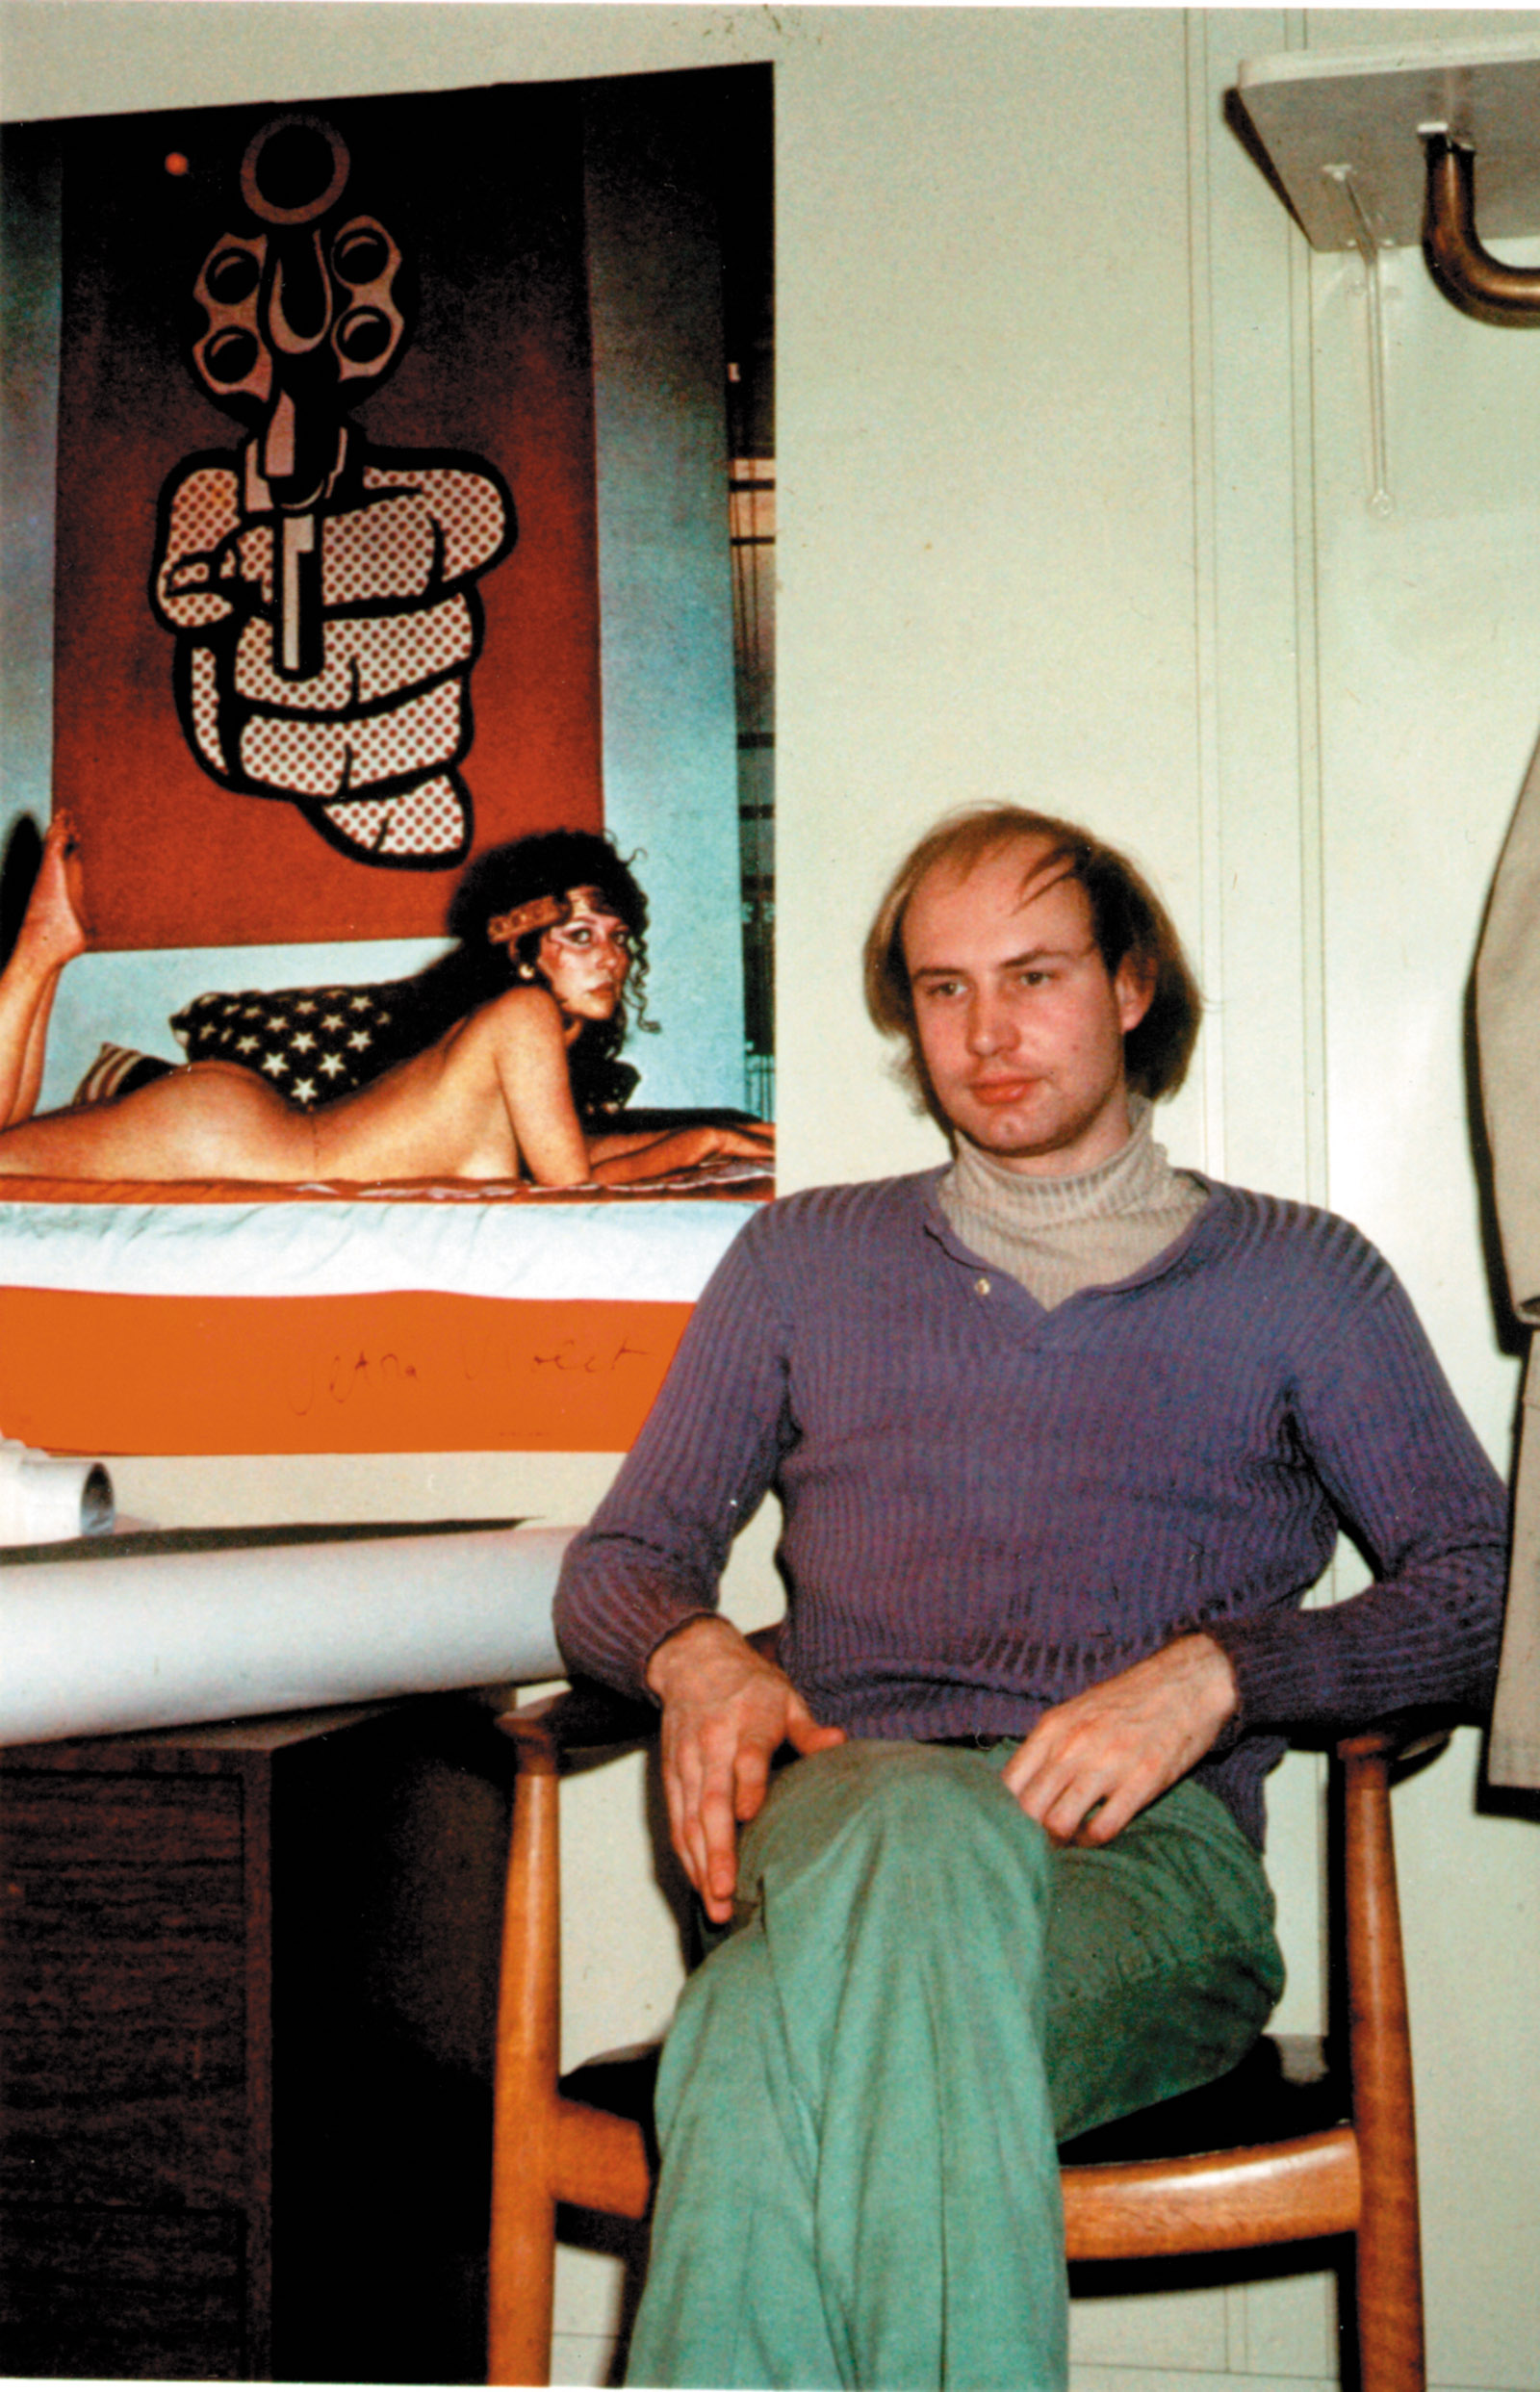 Douglas Crimp in his office at the Solomon R. Guggenheim Museum, New York City, circa 1970. The actress known as Ultra Violet, a regular at Andy Warhol's Factory, appears in the poster behind him.